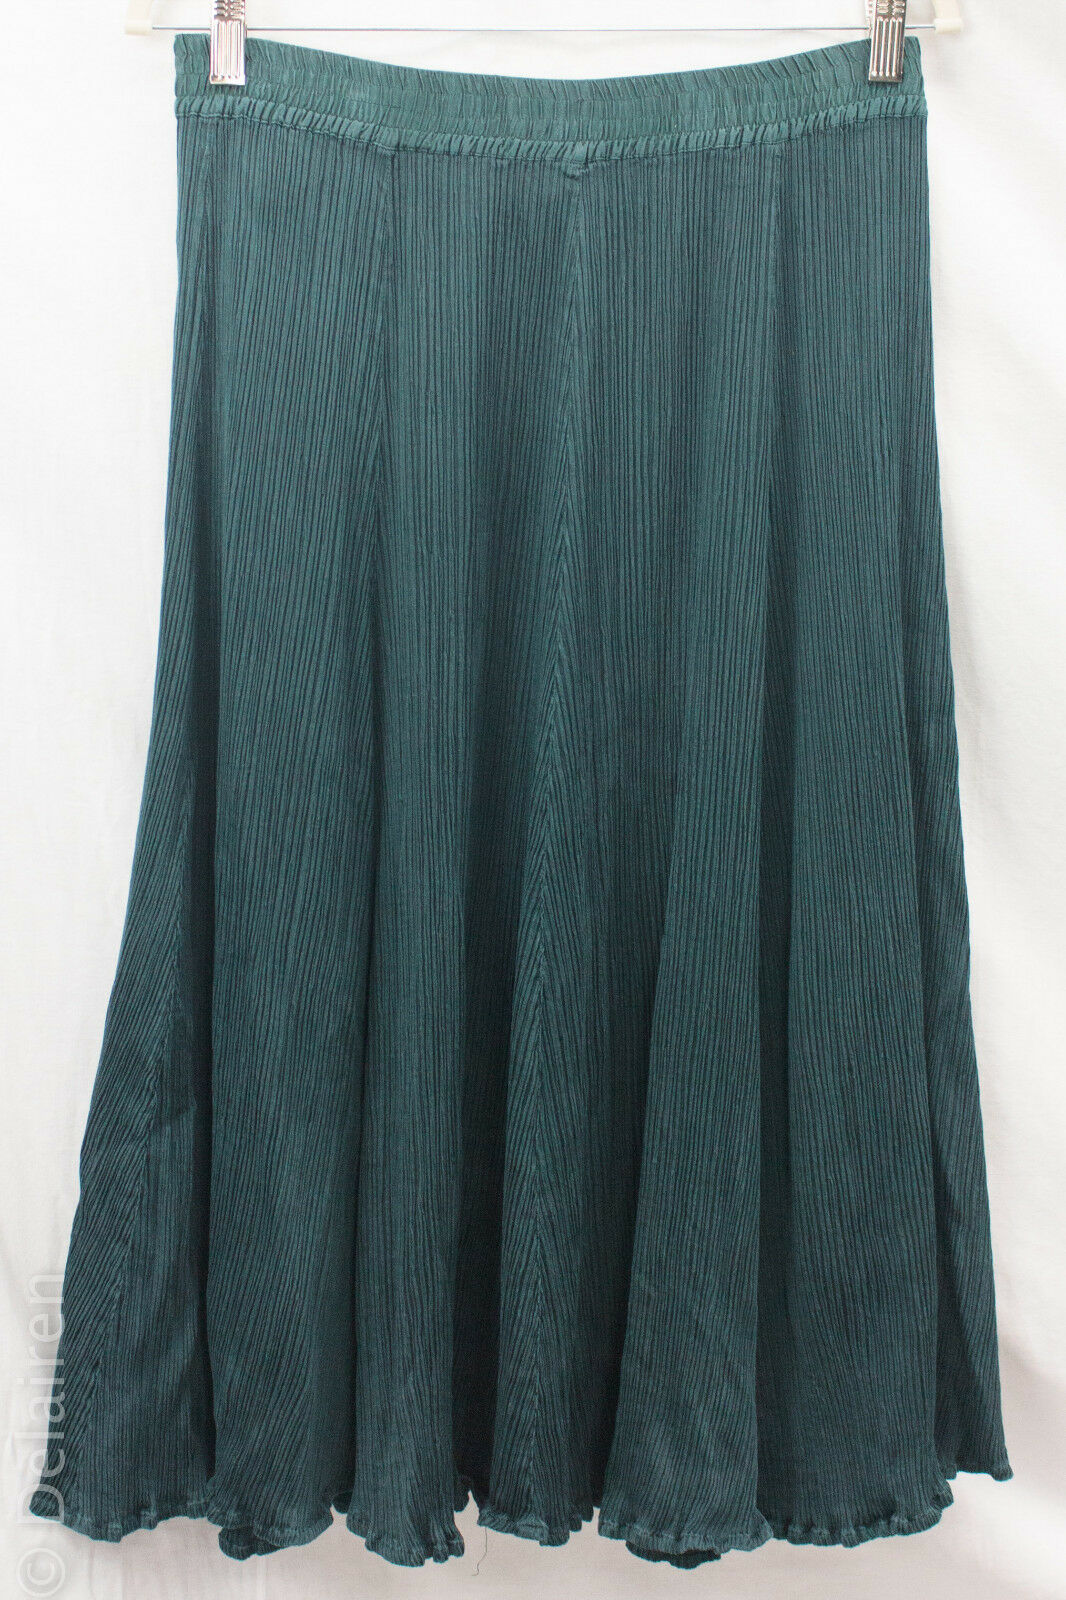 Privatsachen Cocon merz Art to Wear Crinkle Pleated A-Line Silk Blend Skirt